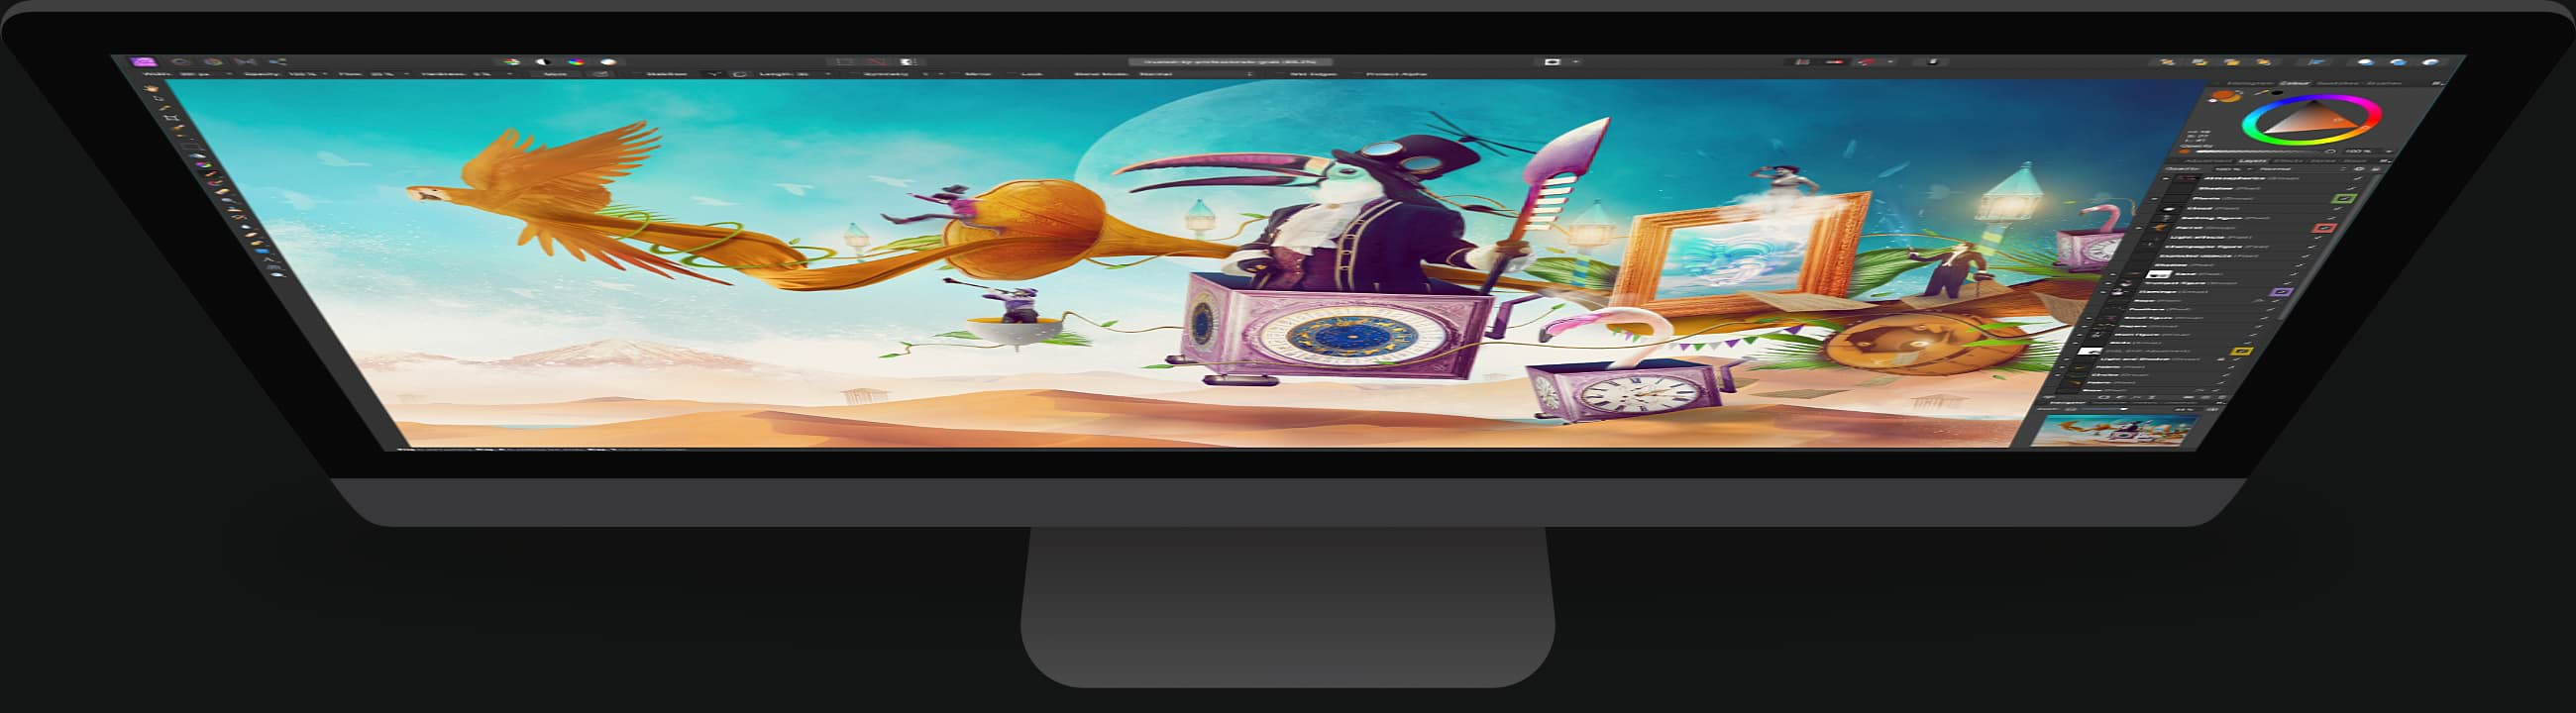 Desktop computer with Affinity Photo open, featuring surreal composition of toucan and other animals travelling across desert